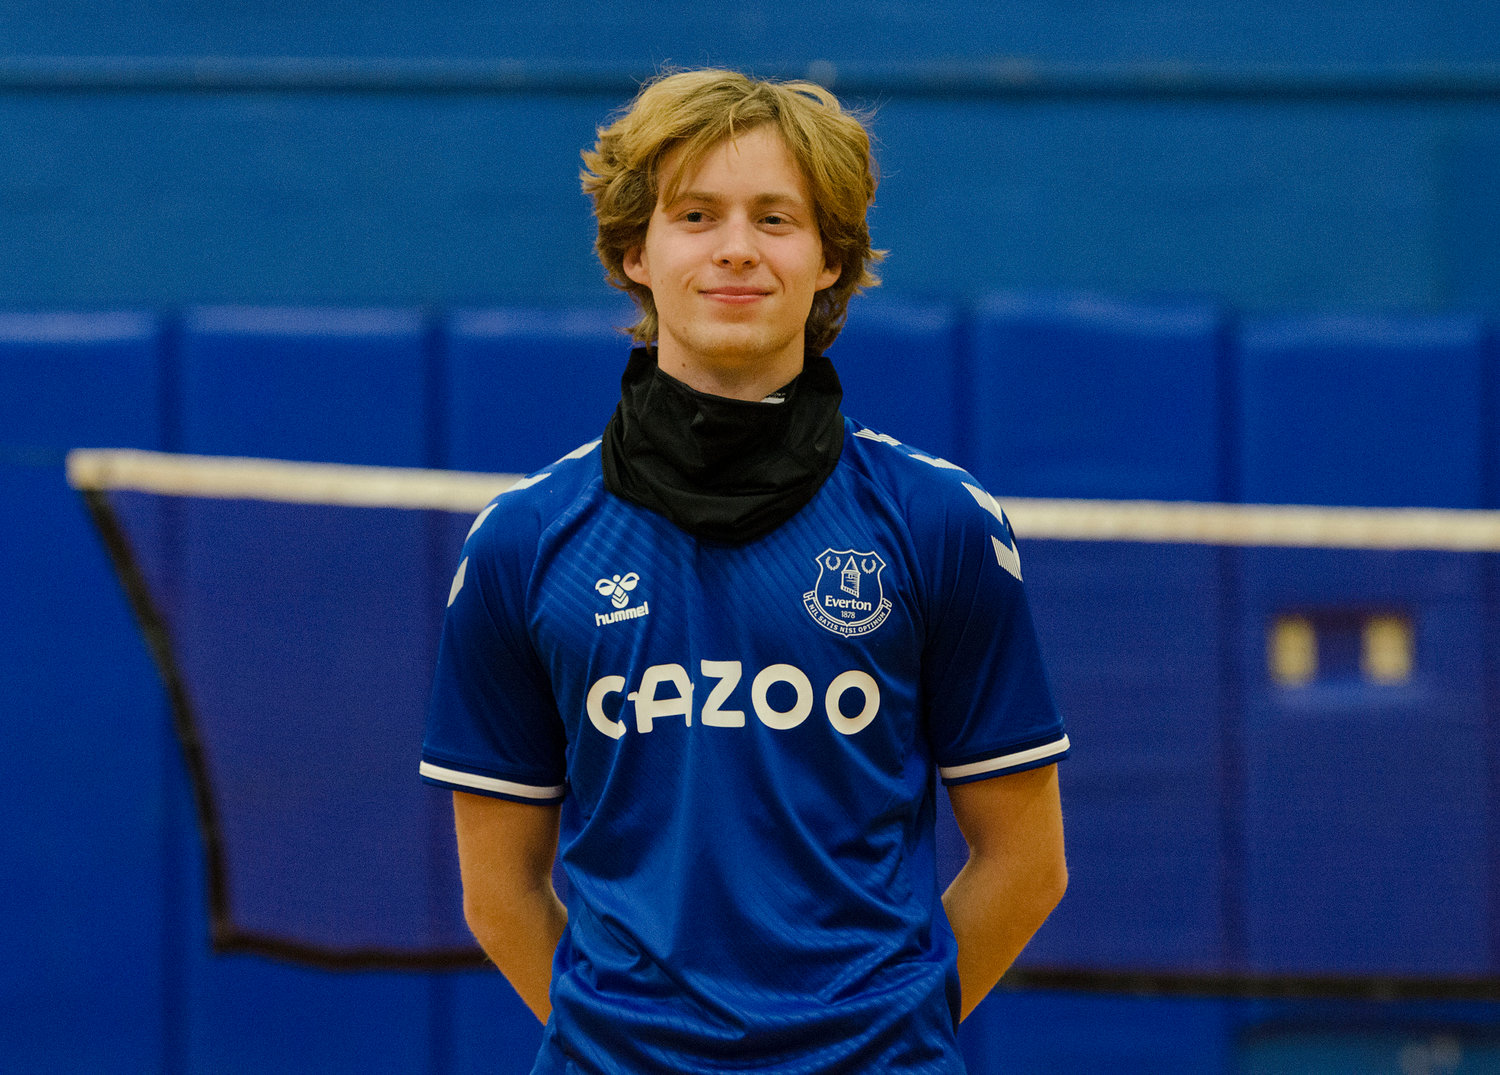 Barrington High School senior Cameron Chalue-Feeney signed his collegiate letter of intent to play soccer for Everton FC Academy in England in the fall. Cameron, a standout for the BHS boys soccer team, celebrated the signing with members of his immediate family.